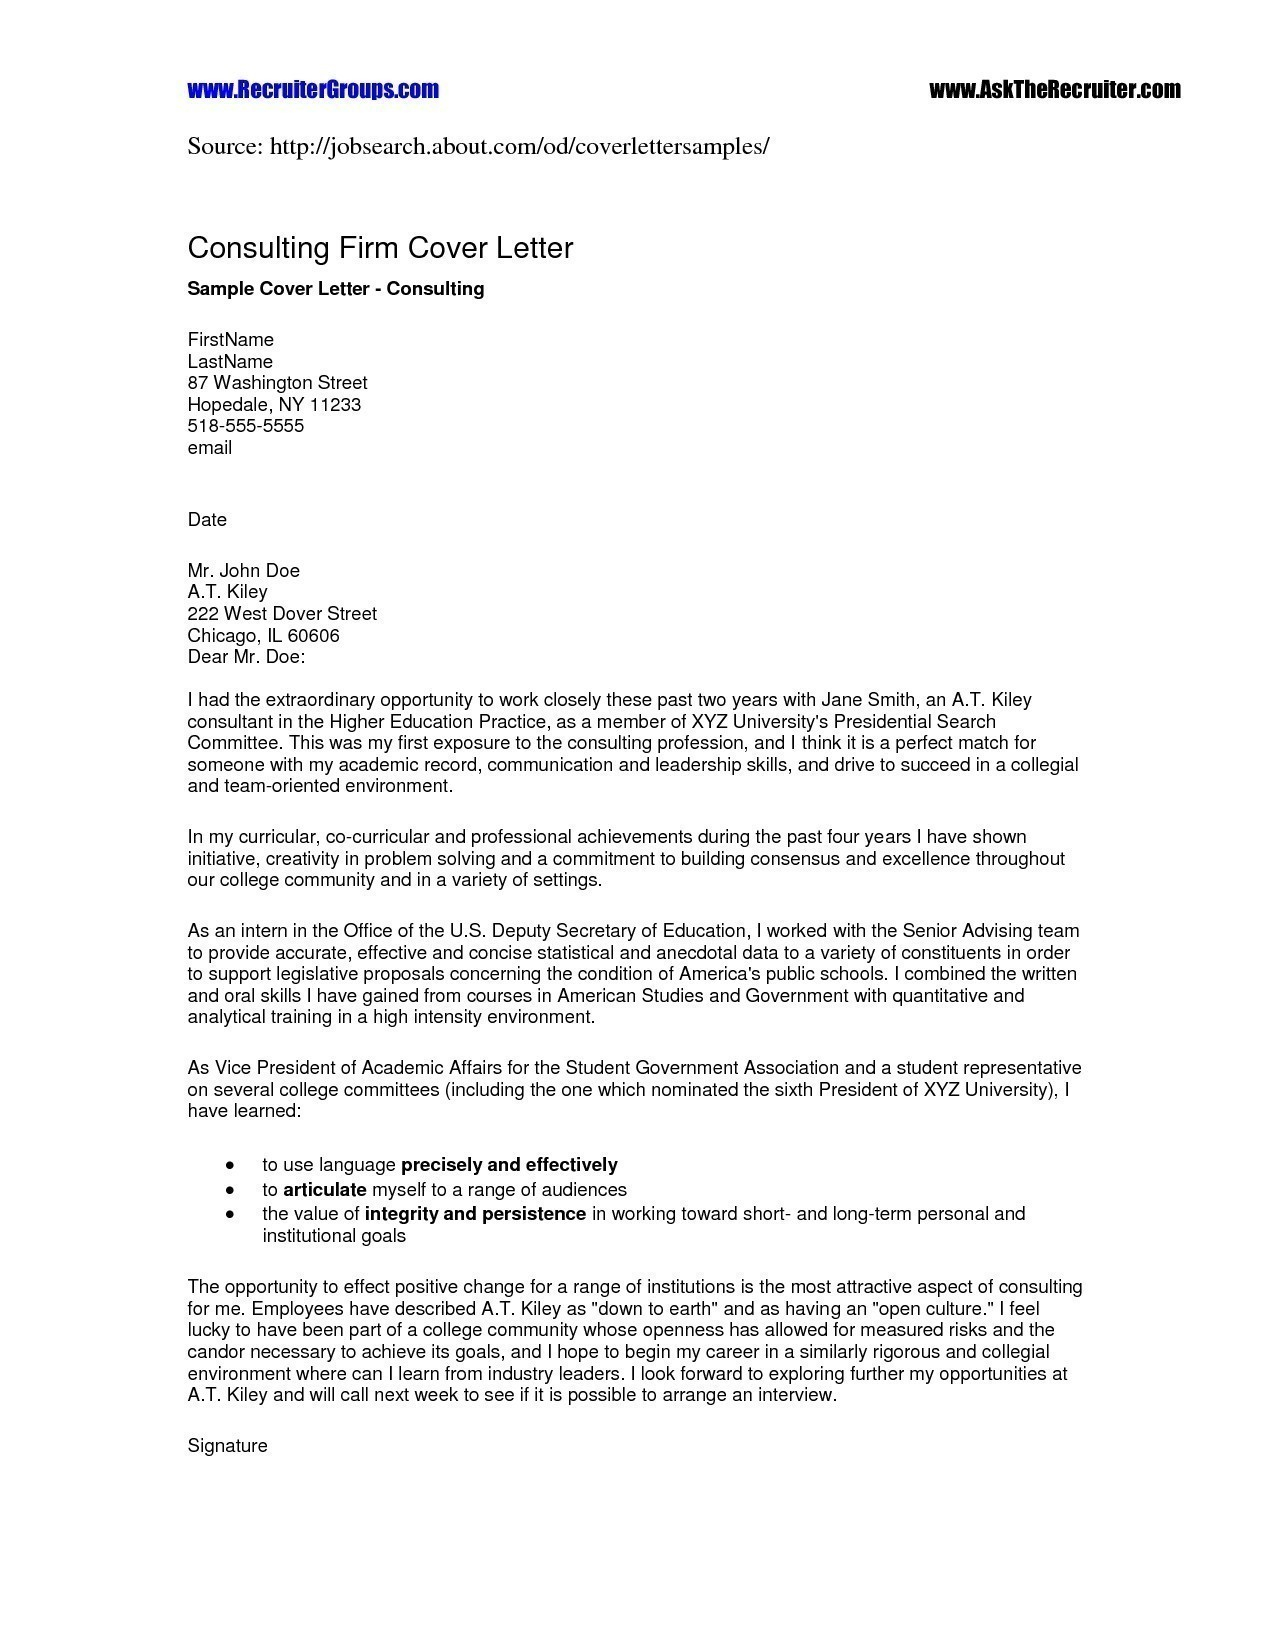 Free Job Offer Letter Template - How to Write Job Fer Letter Fresh Job Fer Letter Sample Best Job